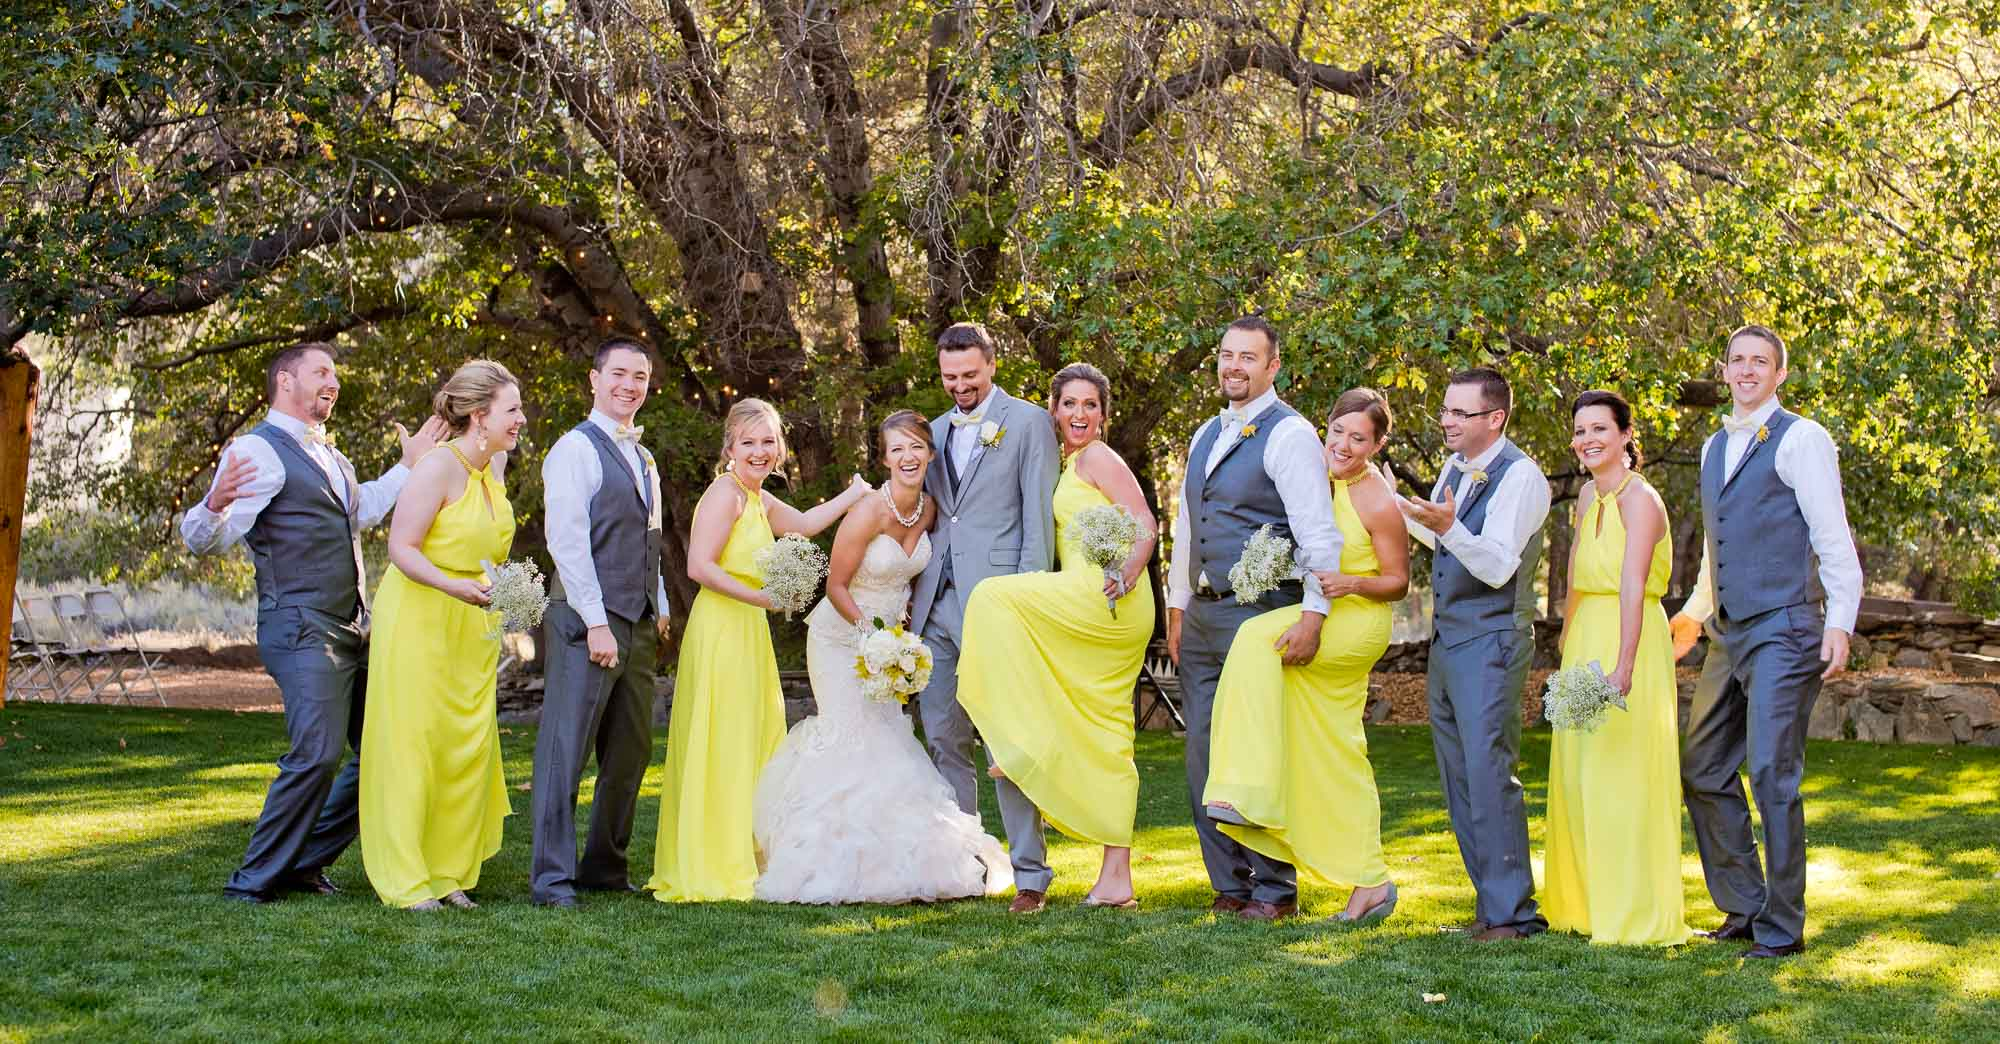 Amber & Daniel – Wrightwood Guest Ranch Wedding featured slider image